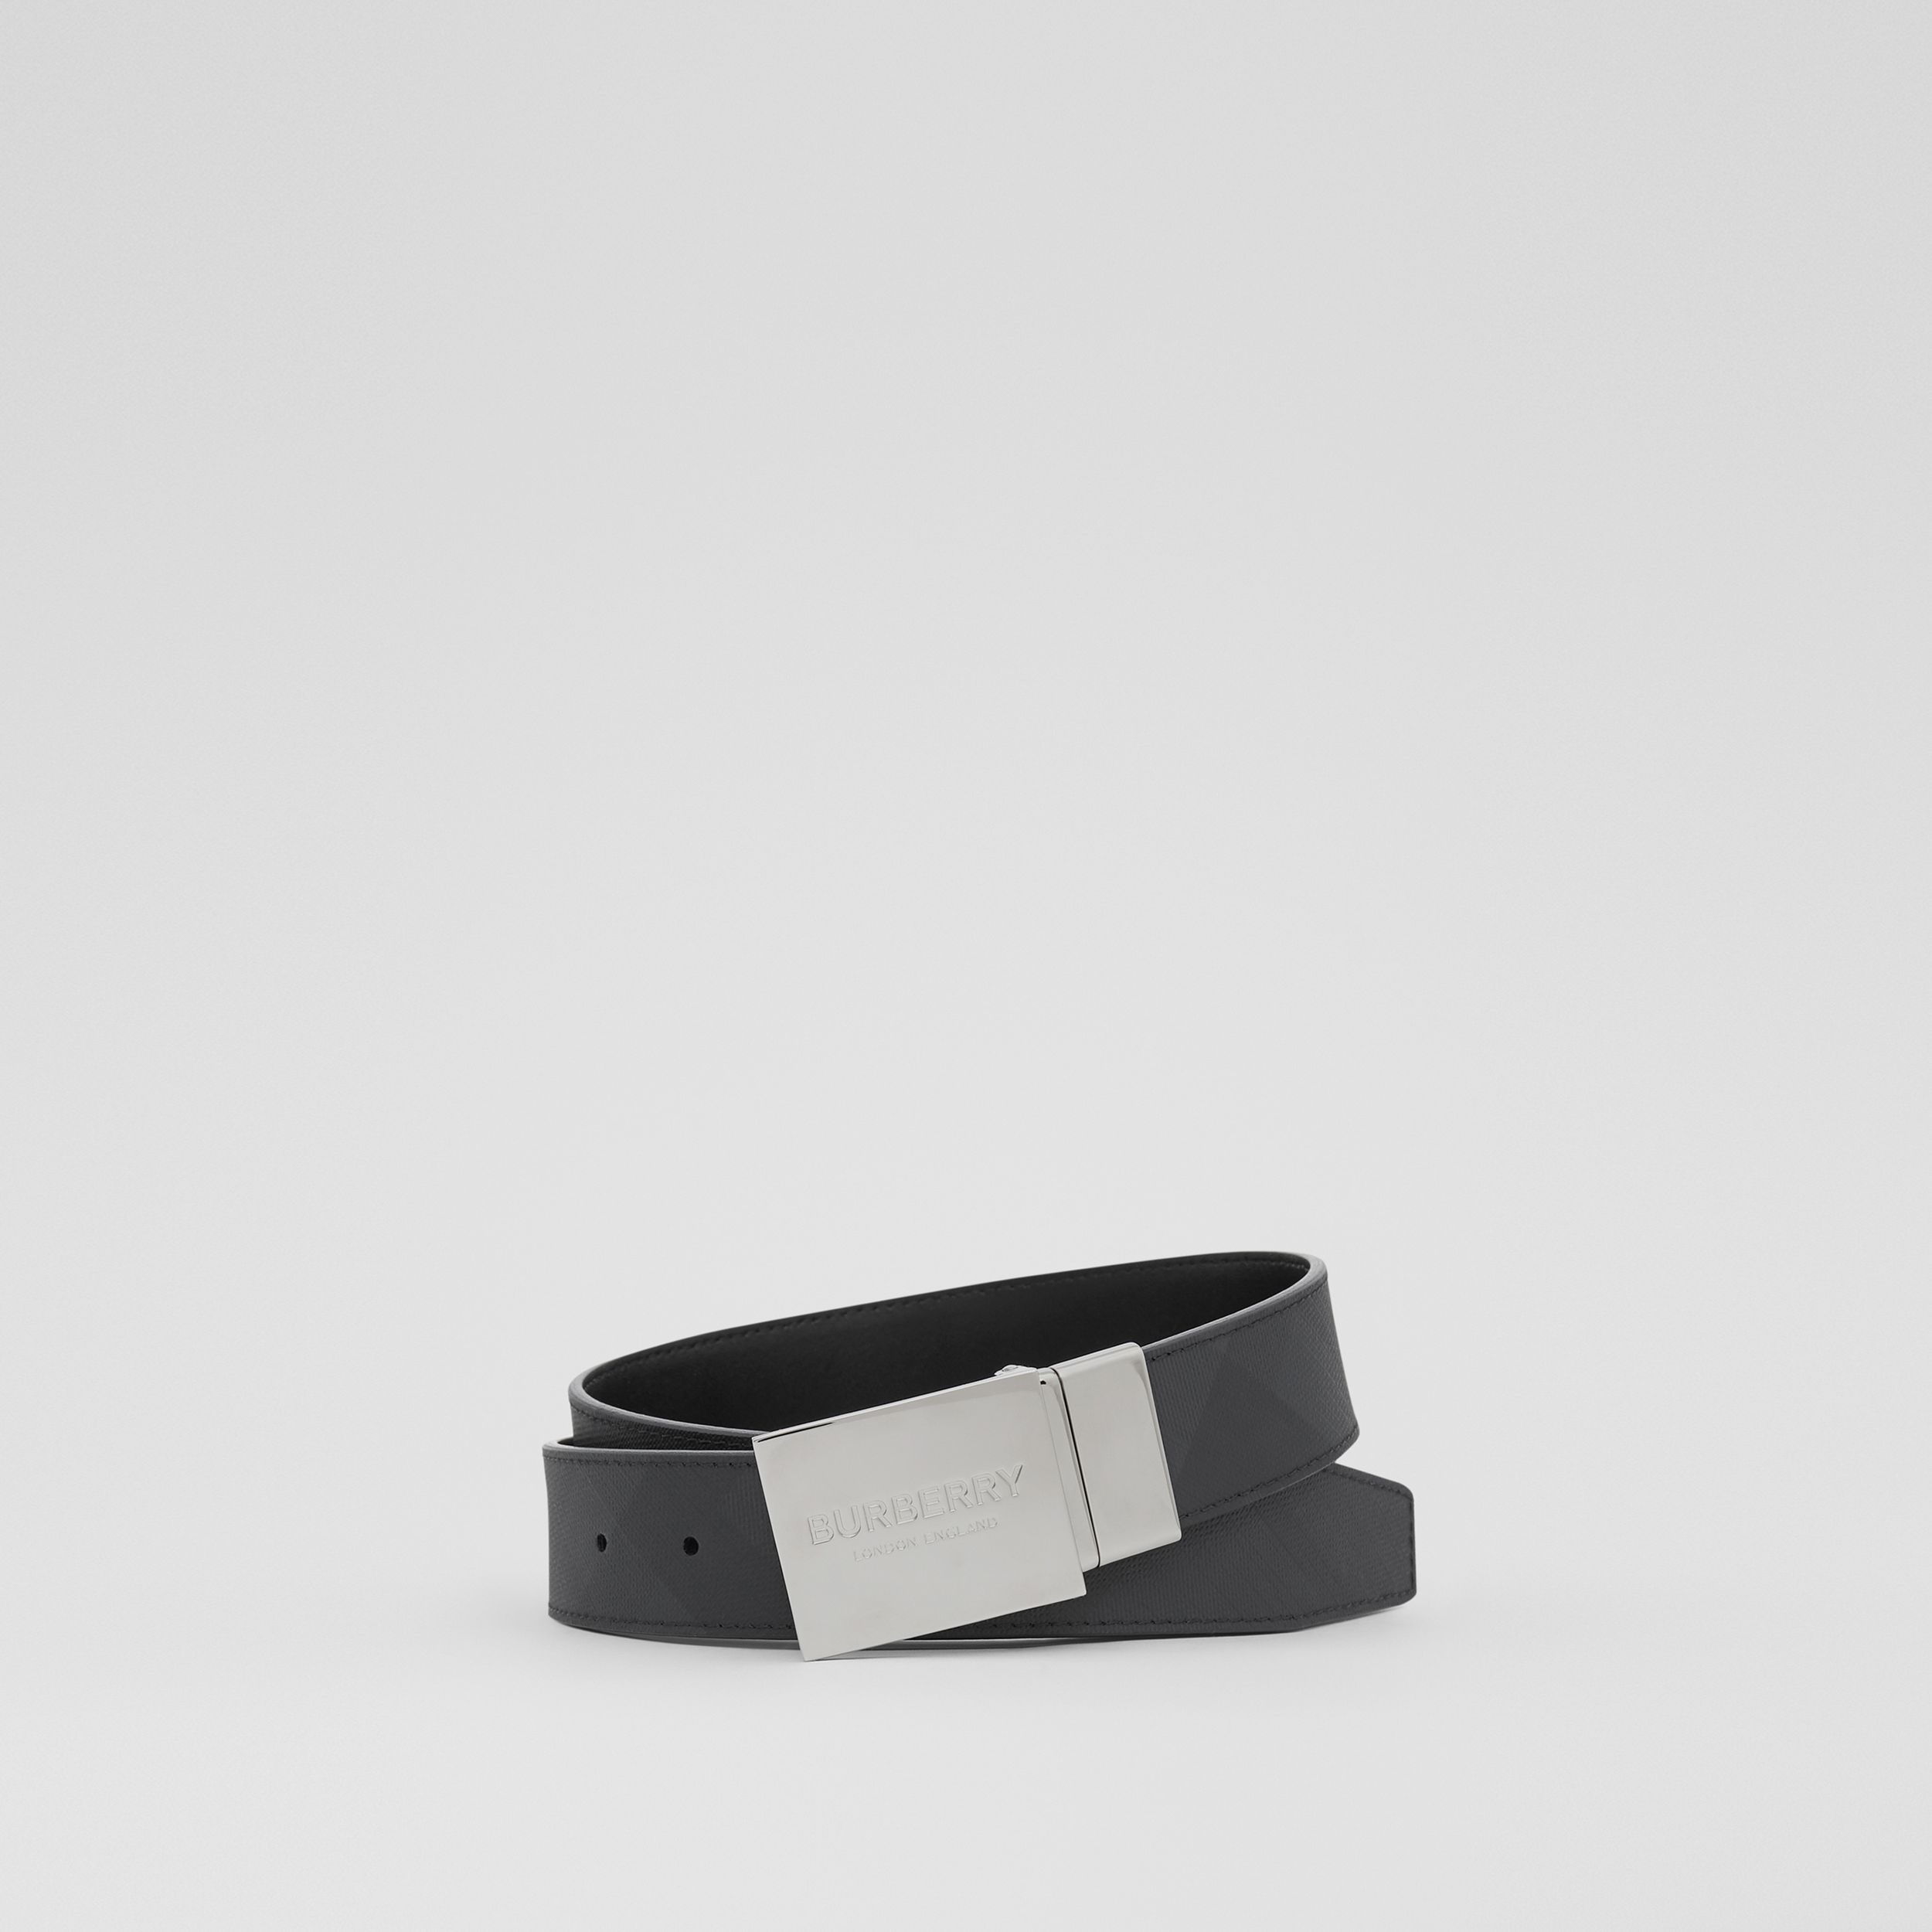 Reversible Plaque Buckle London Check Belt in Dark Charcoal / Black - Men | Burberry - 1